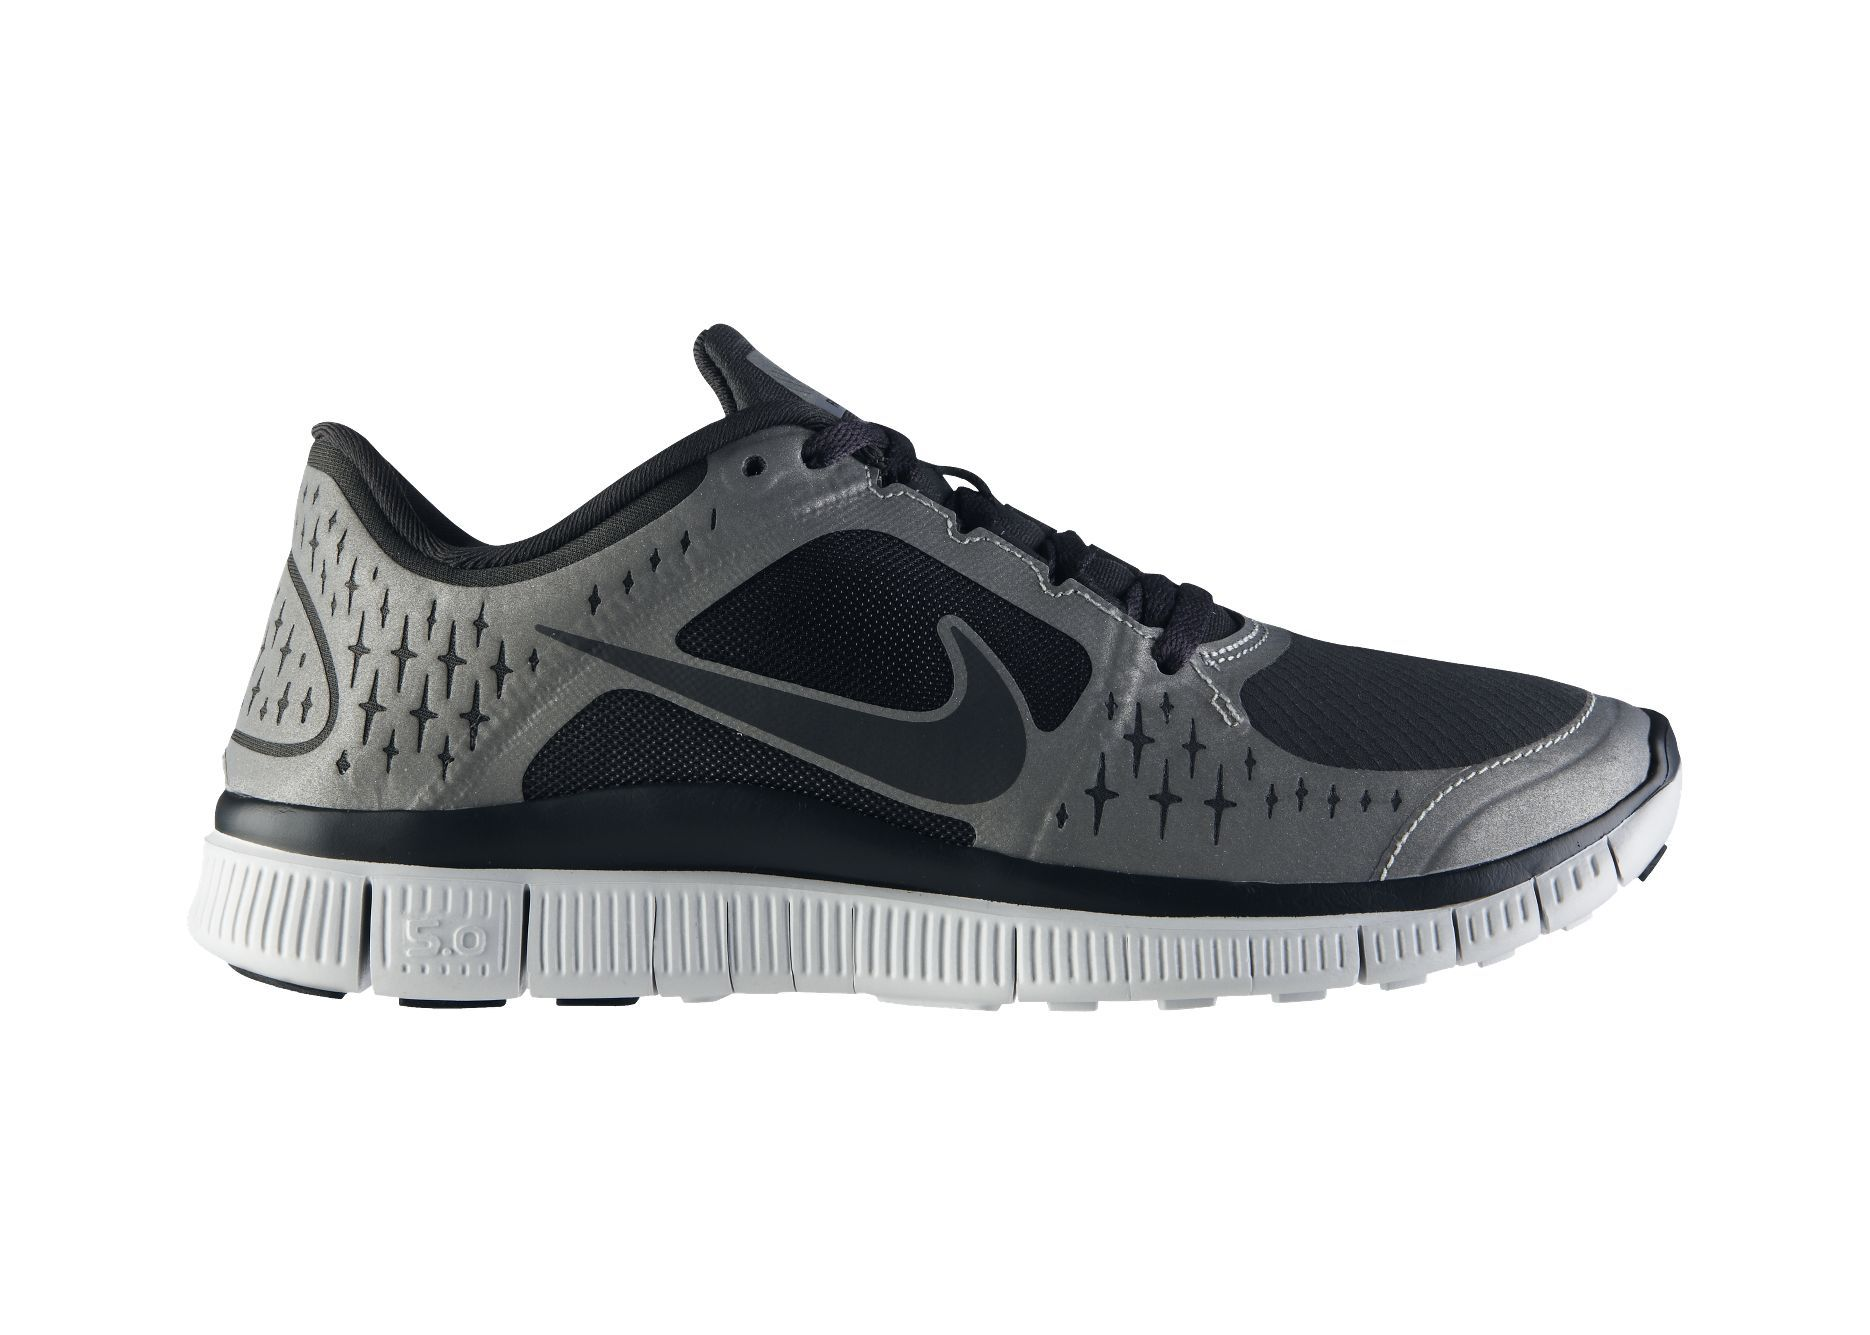 70f1644d7bf74 HAVE  Nike Free Run 3 Shield Women s Running Shoe   Anthracite Anthracite-Reflective Silver-Pure Platinum